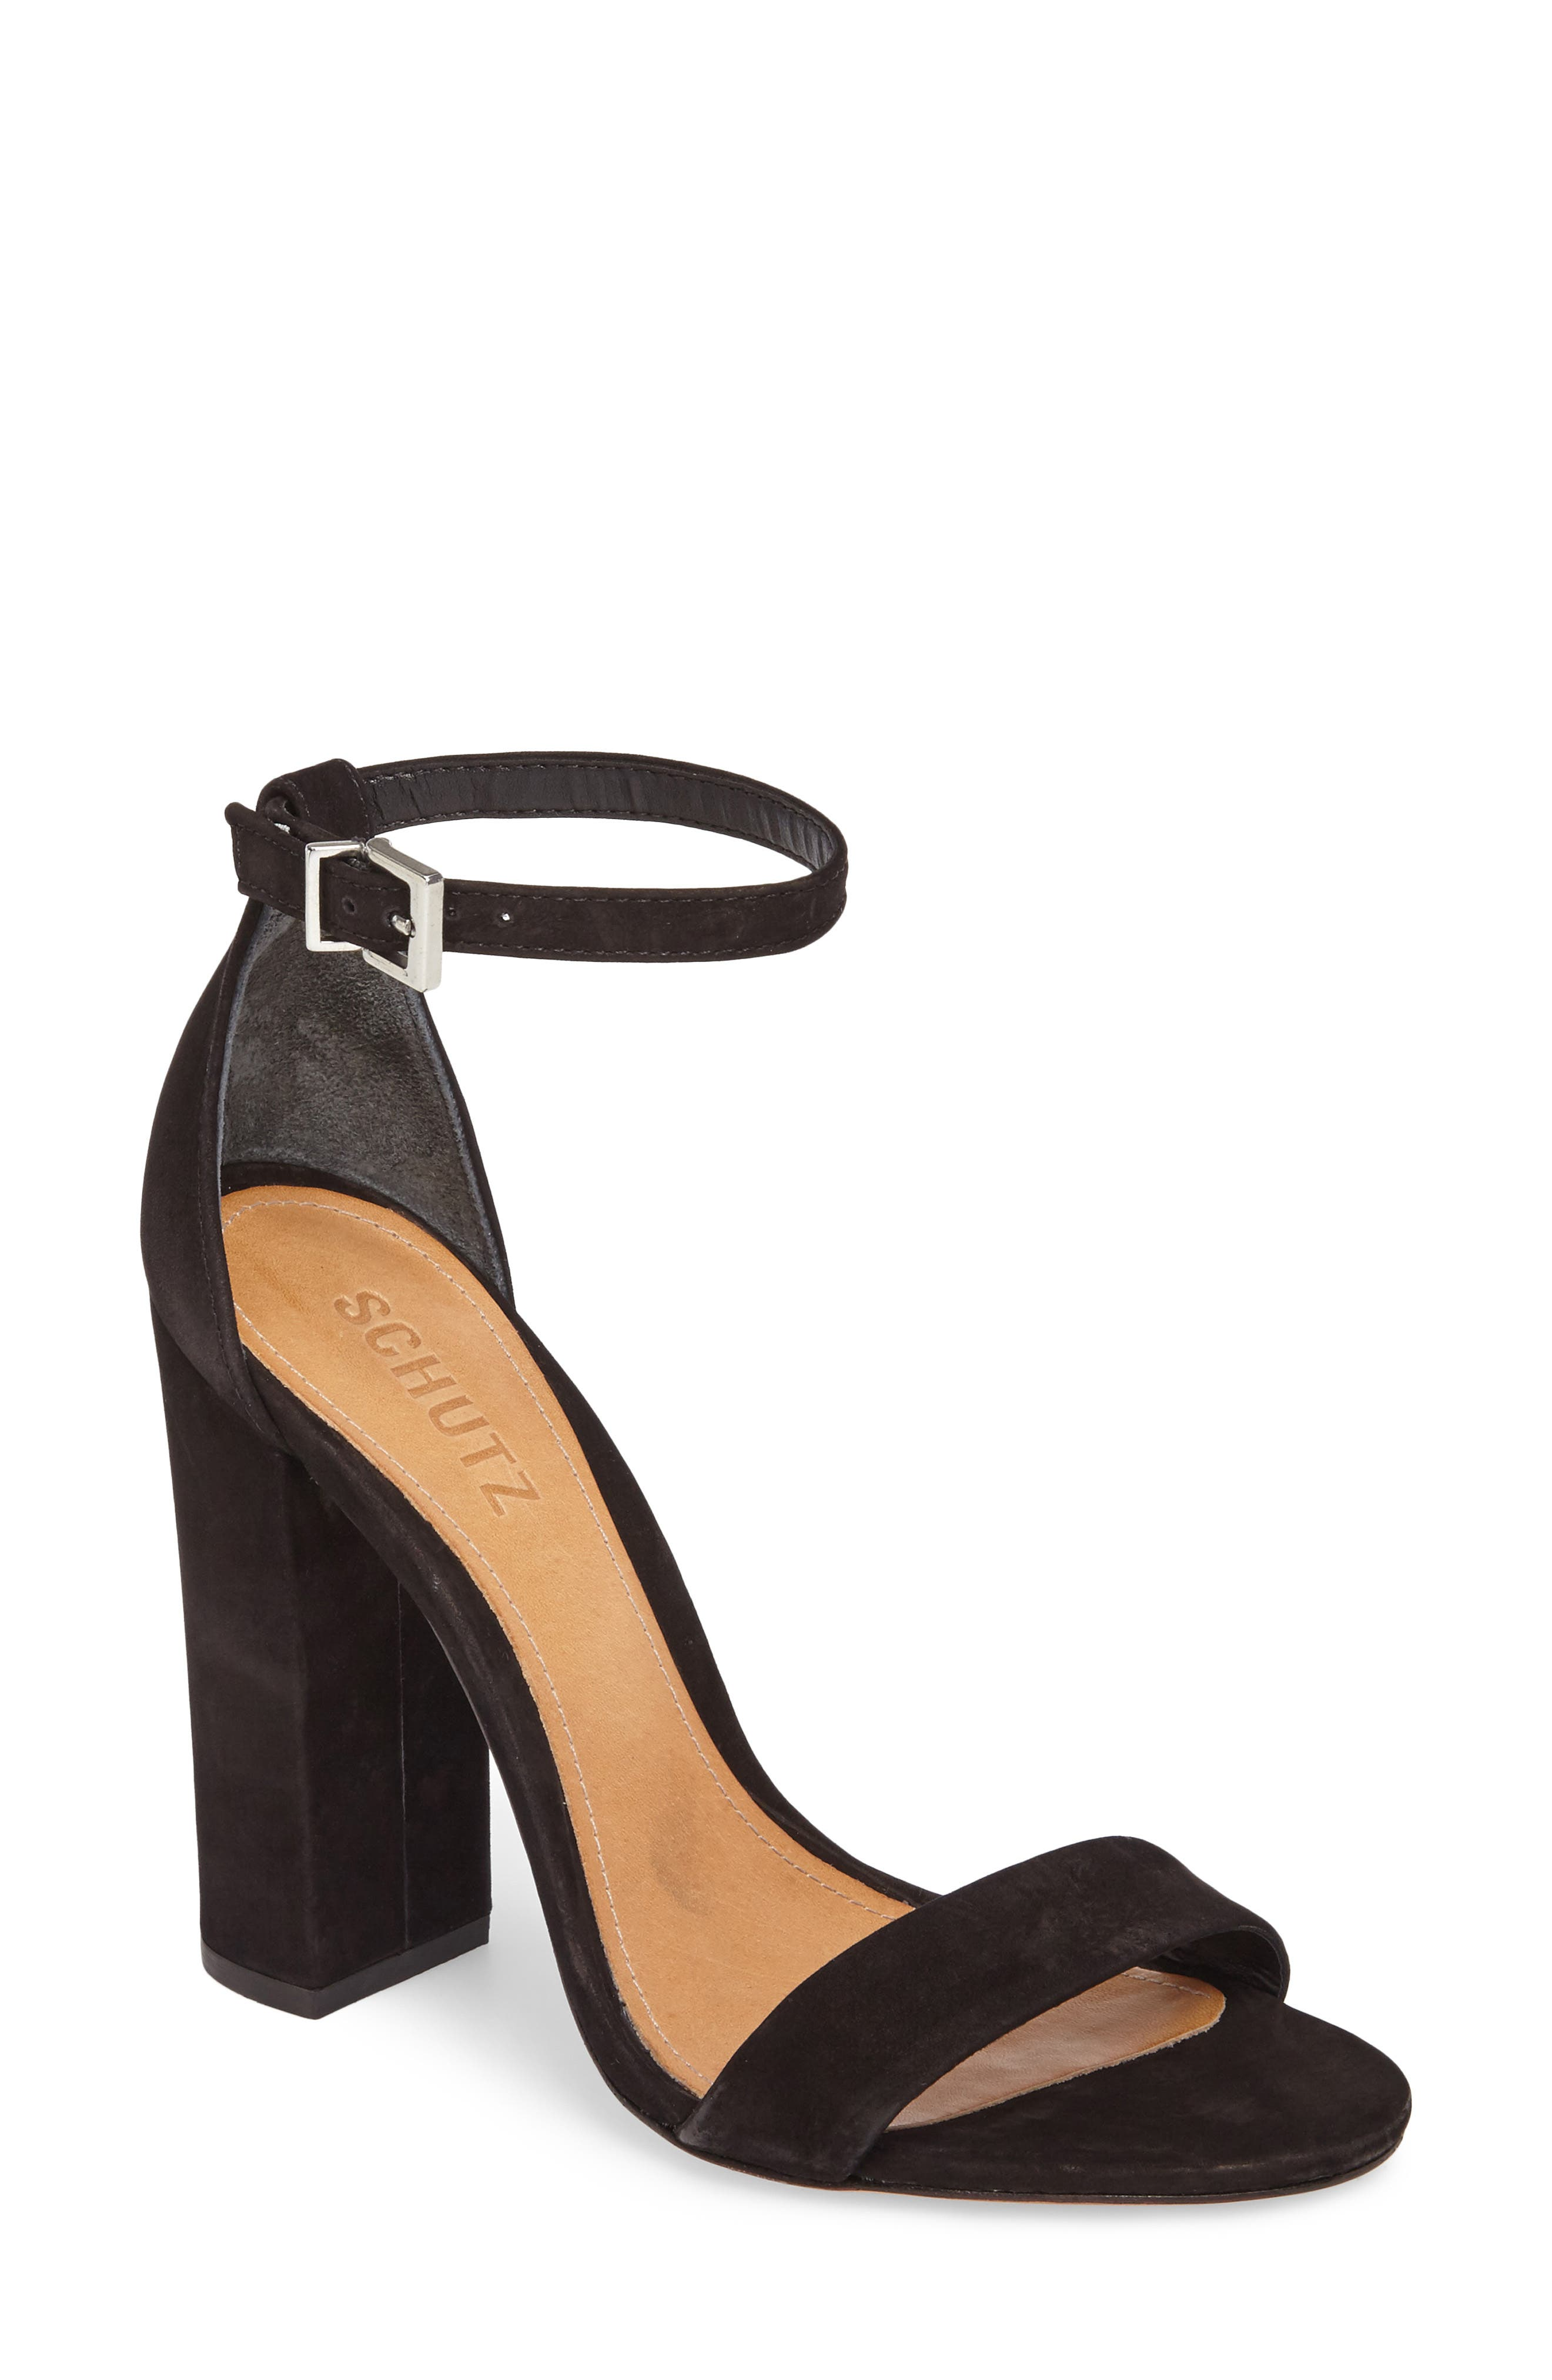 Enida Strappy Sandal,                             Main thumbnail 1, color,                             Black Nubuck Leather